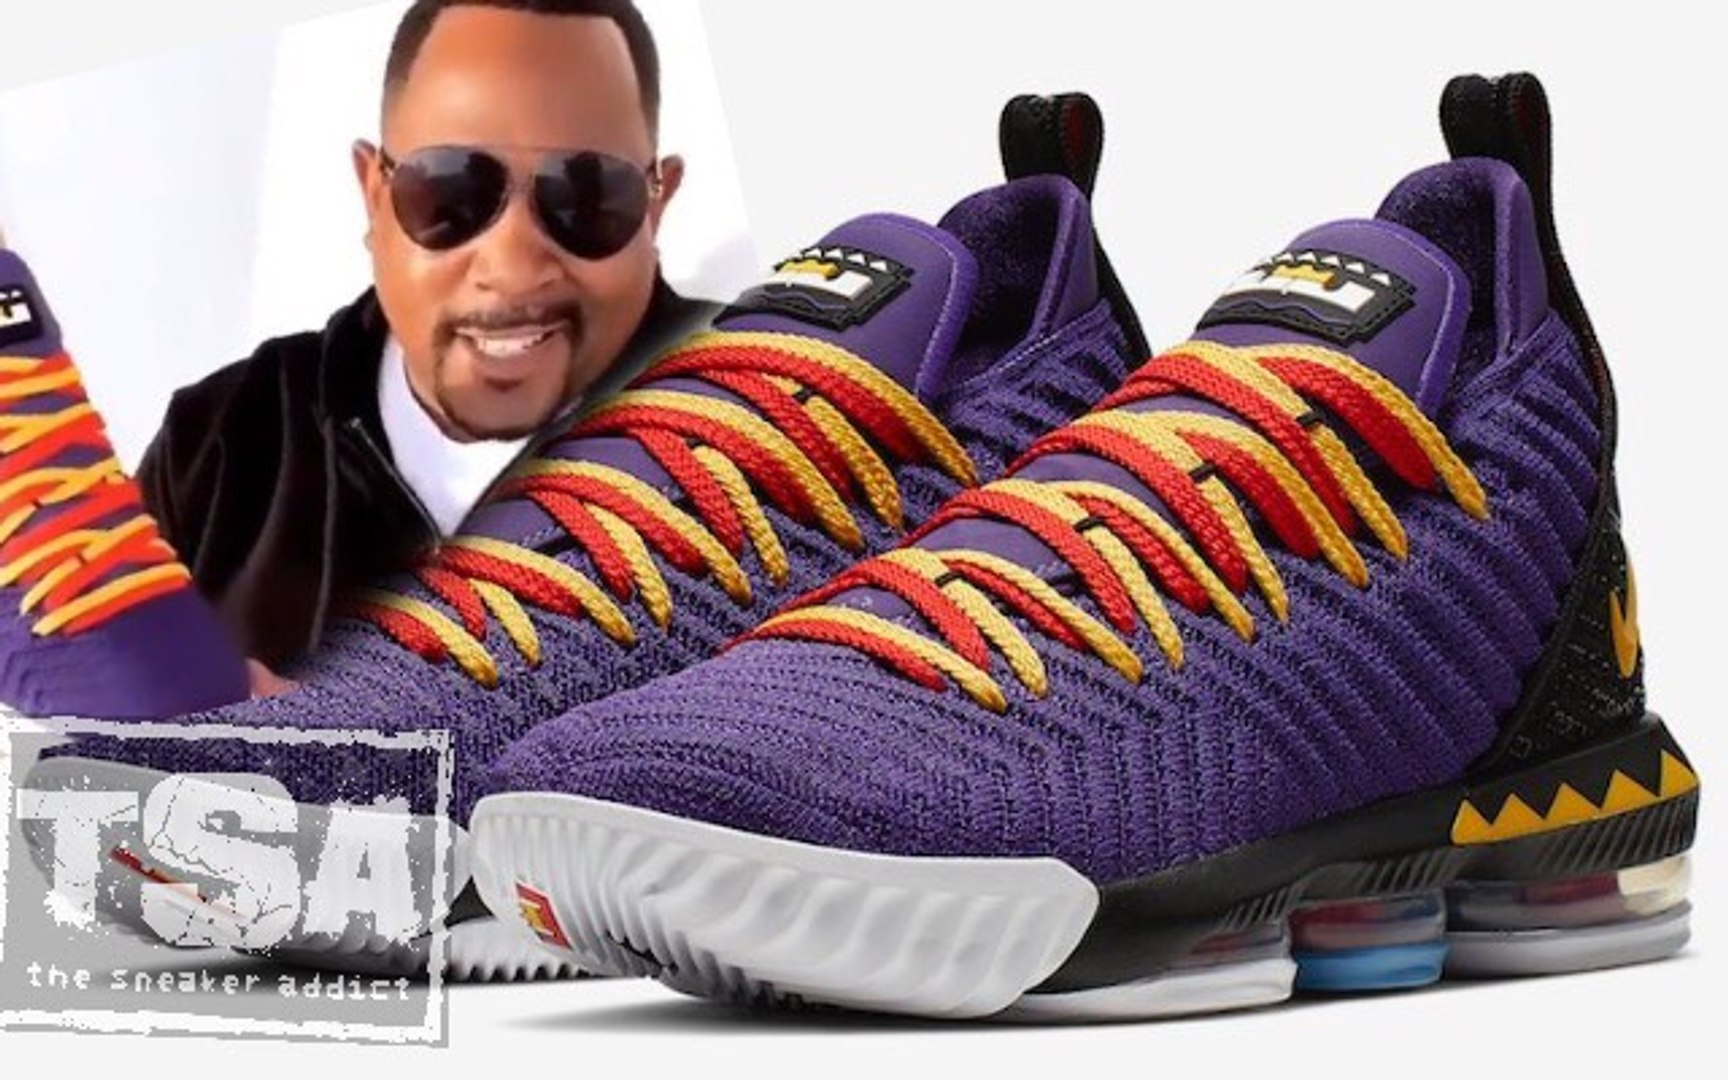 Martin Lawrence Nike Lebron James 16 Sneaker Inspired by the TV Show